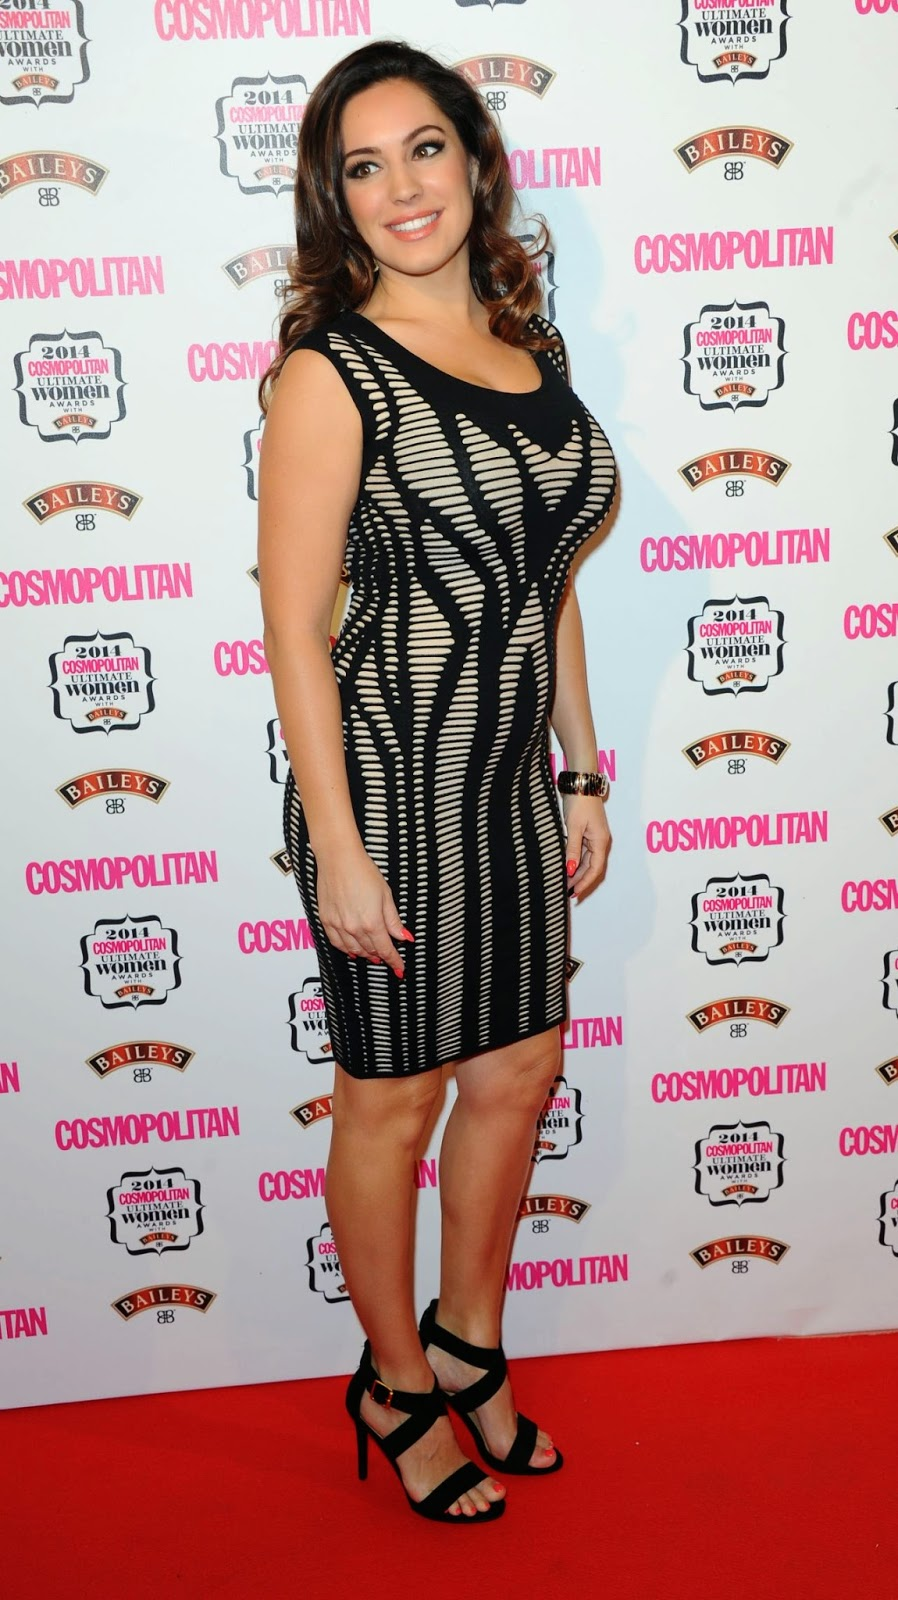 Kelly Brook shows off curvaceous figure at the 2014 Cosmopolitan Ultimate Women Awards in London